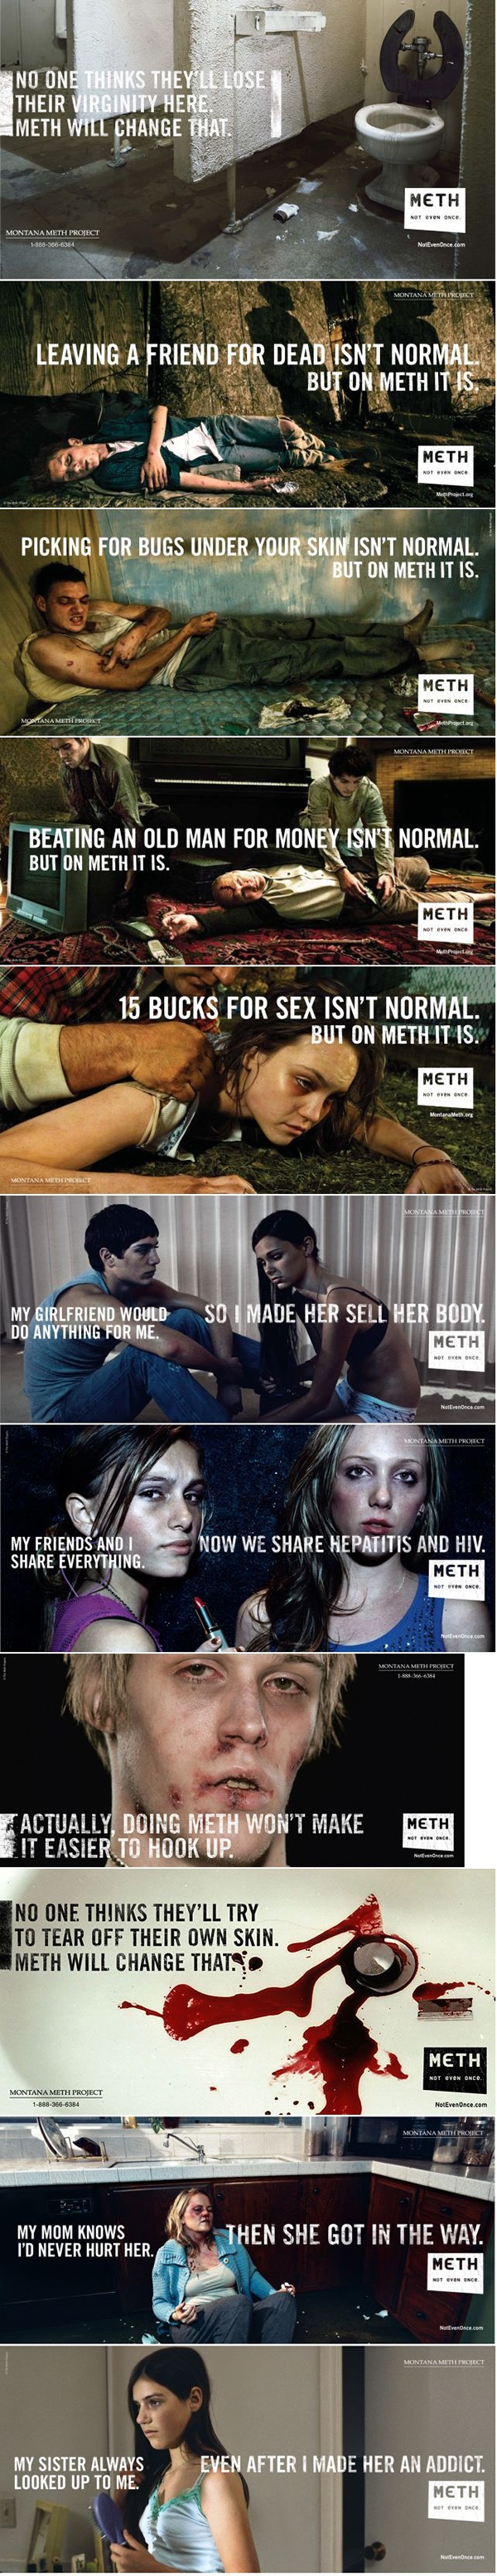 Billboards for the Montana Meth Project